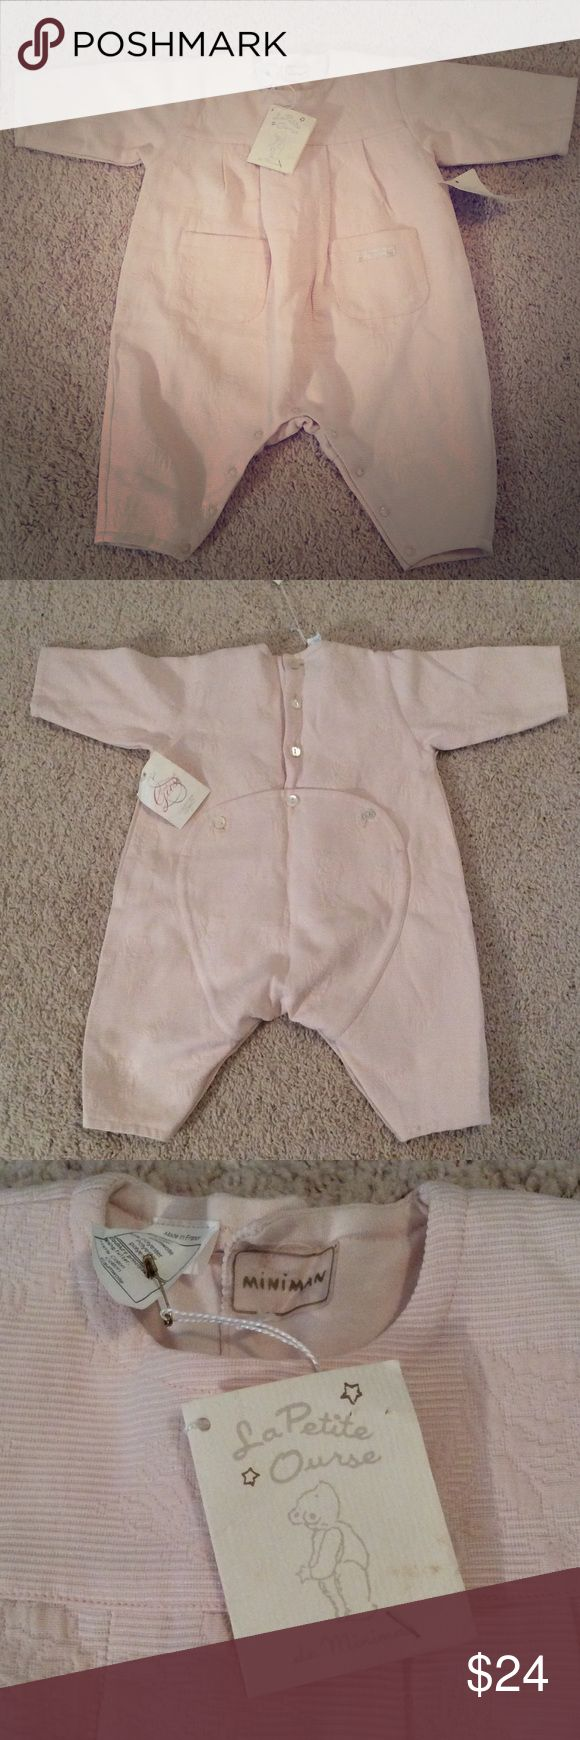 La Petite Ourse size 6 months NWT Made in France NWT La Petite Ourse size 6 months outfit. Light pink. So cute! My camera just doesn't capture the beauty of this outfit! Made in France. La Petite Ourse One Pieces